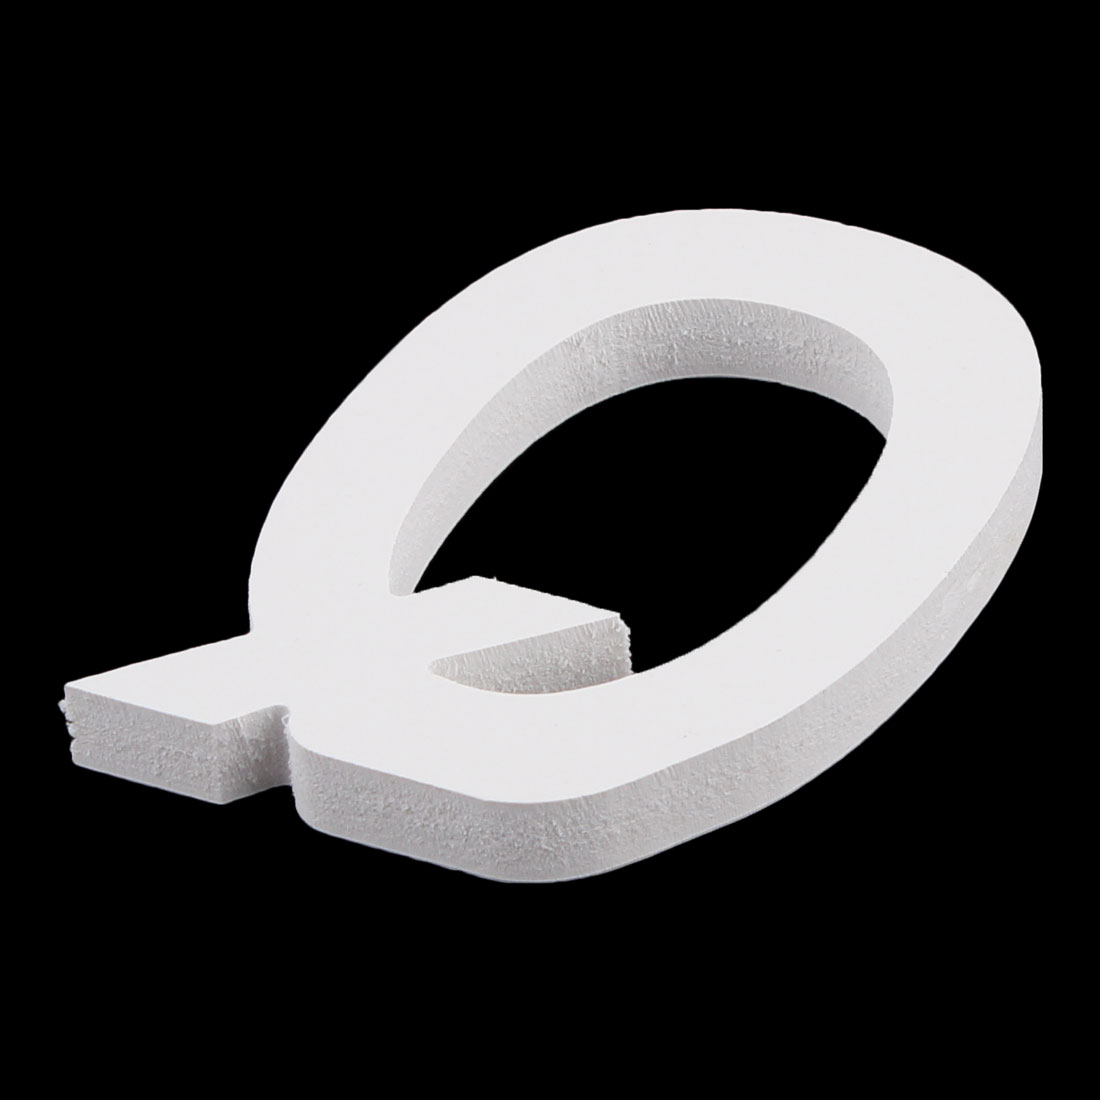 Wedding Party Home Plywood Decoration English Q Letter Alphabet DIY Wall White - image 2 of 3